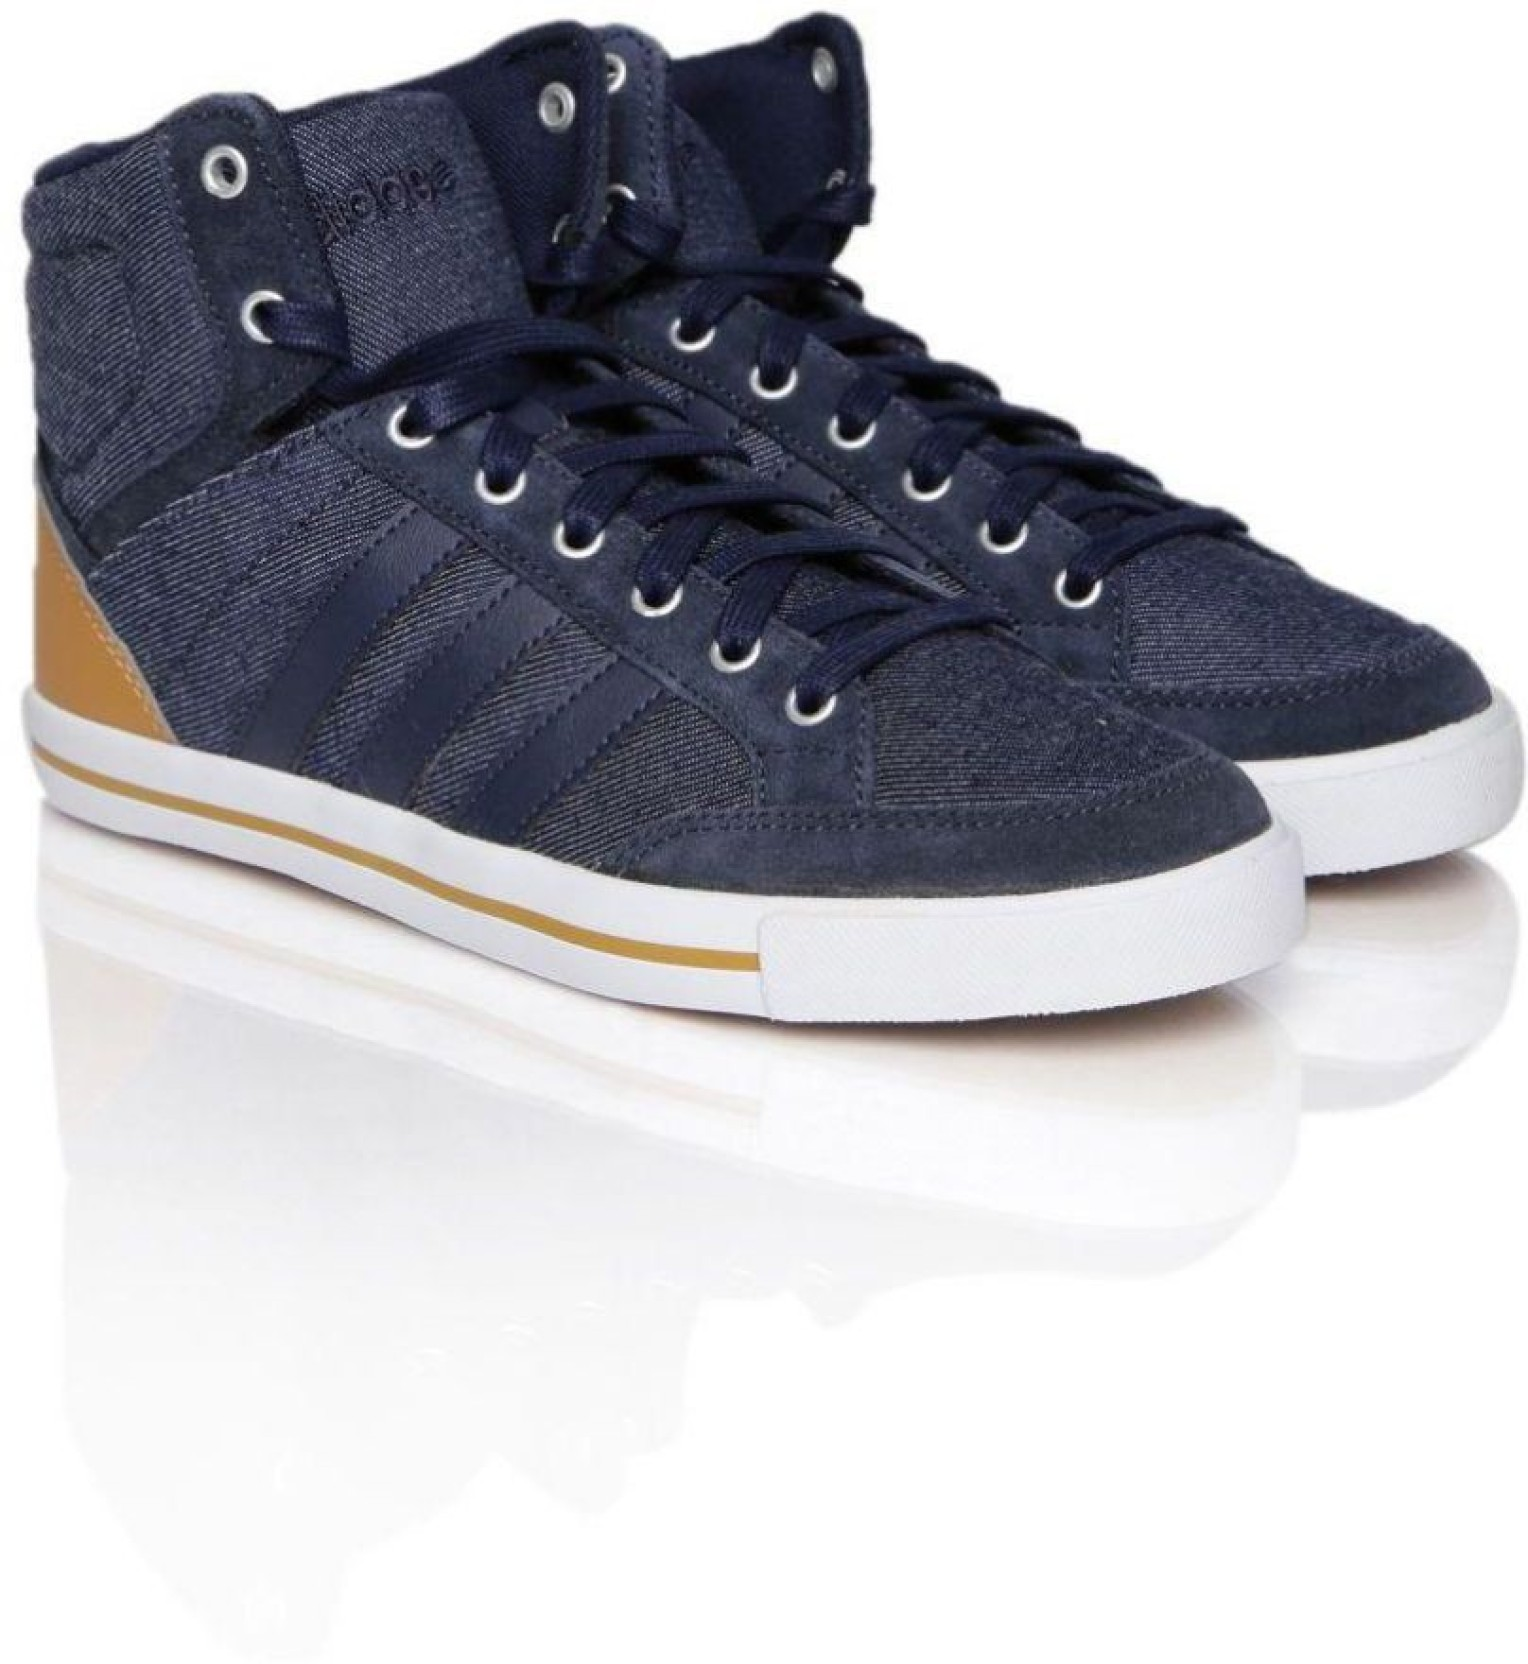 size 40 d7aa9 f596e ADIDAS adidas neo Men s Cacity Mid Leather Sneakers High Tops For Men (Blue)